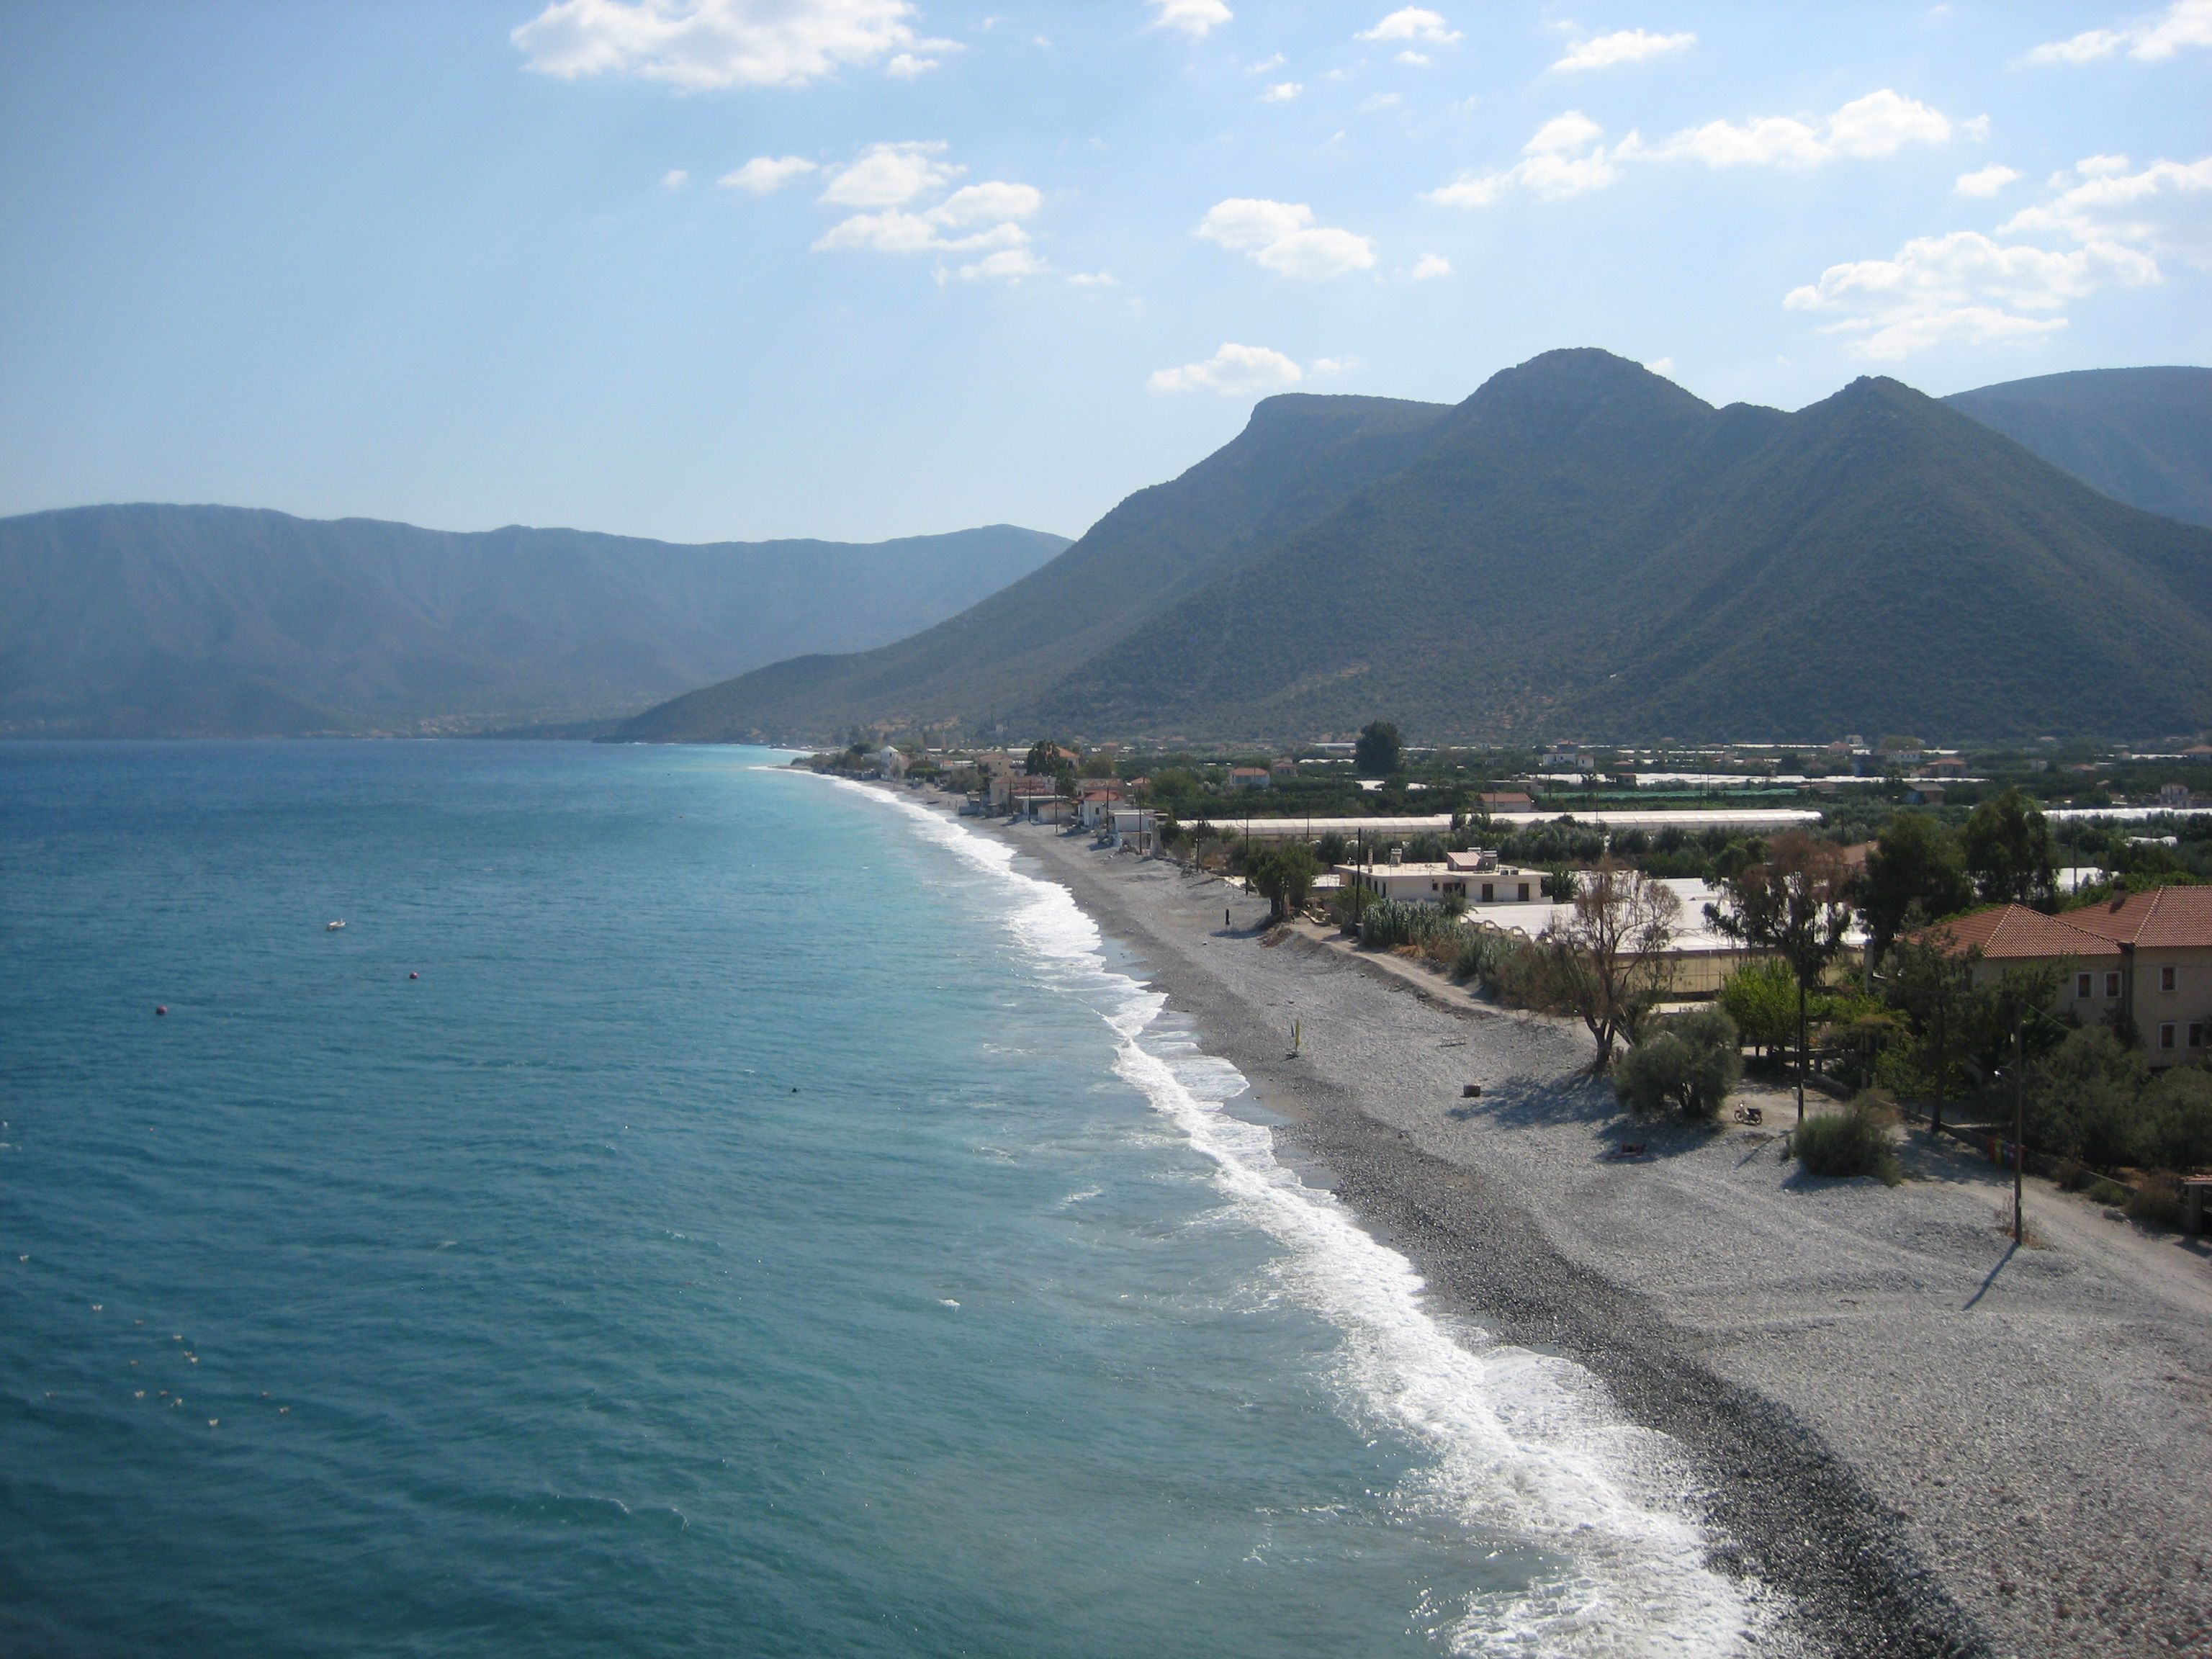 The Peloponnese, Greece: check out our blog post from a little visited, yet staggeringly beautiful part of Greece.    http://www.originaltravel.co.uk/blog/country/europe/greece/the-peloponnese-if-you-please.html